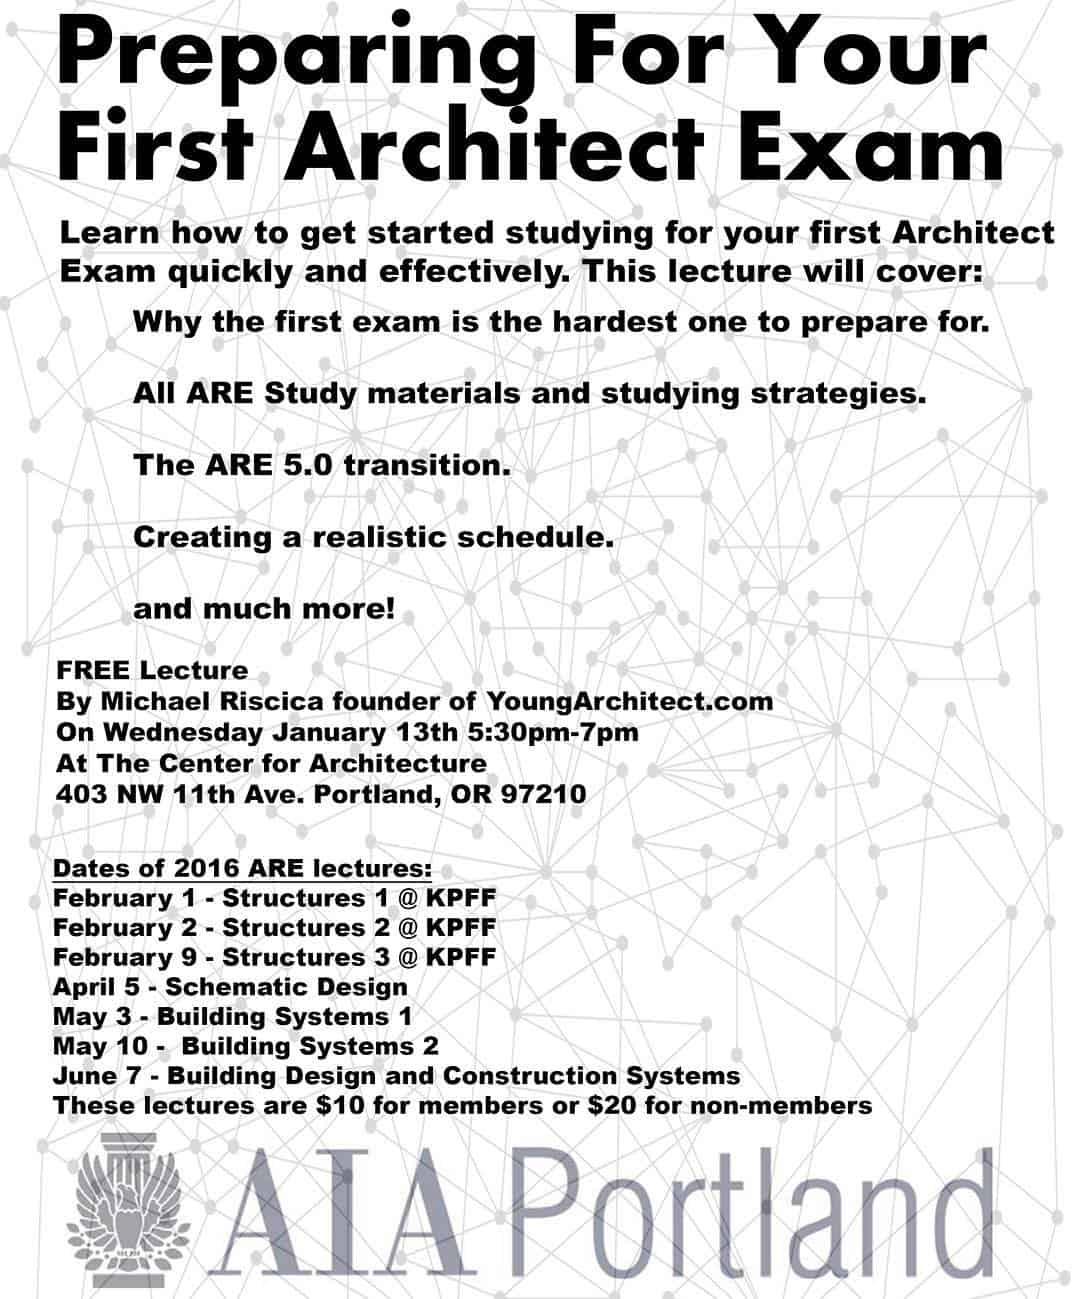 How to prepare for the first architecture exam